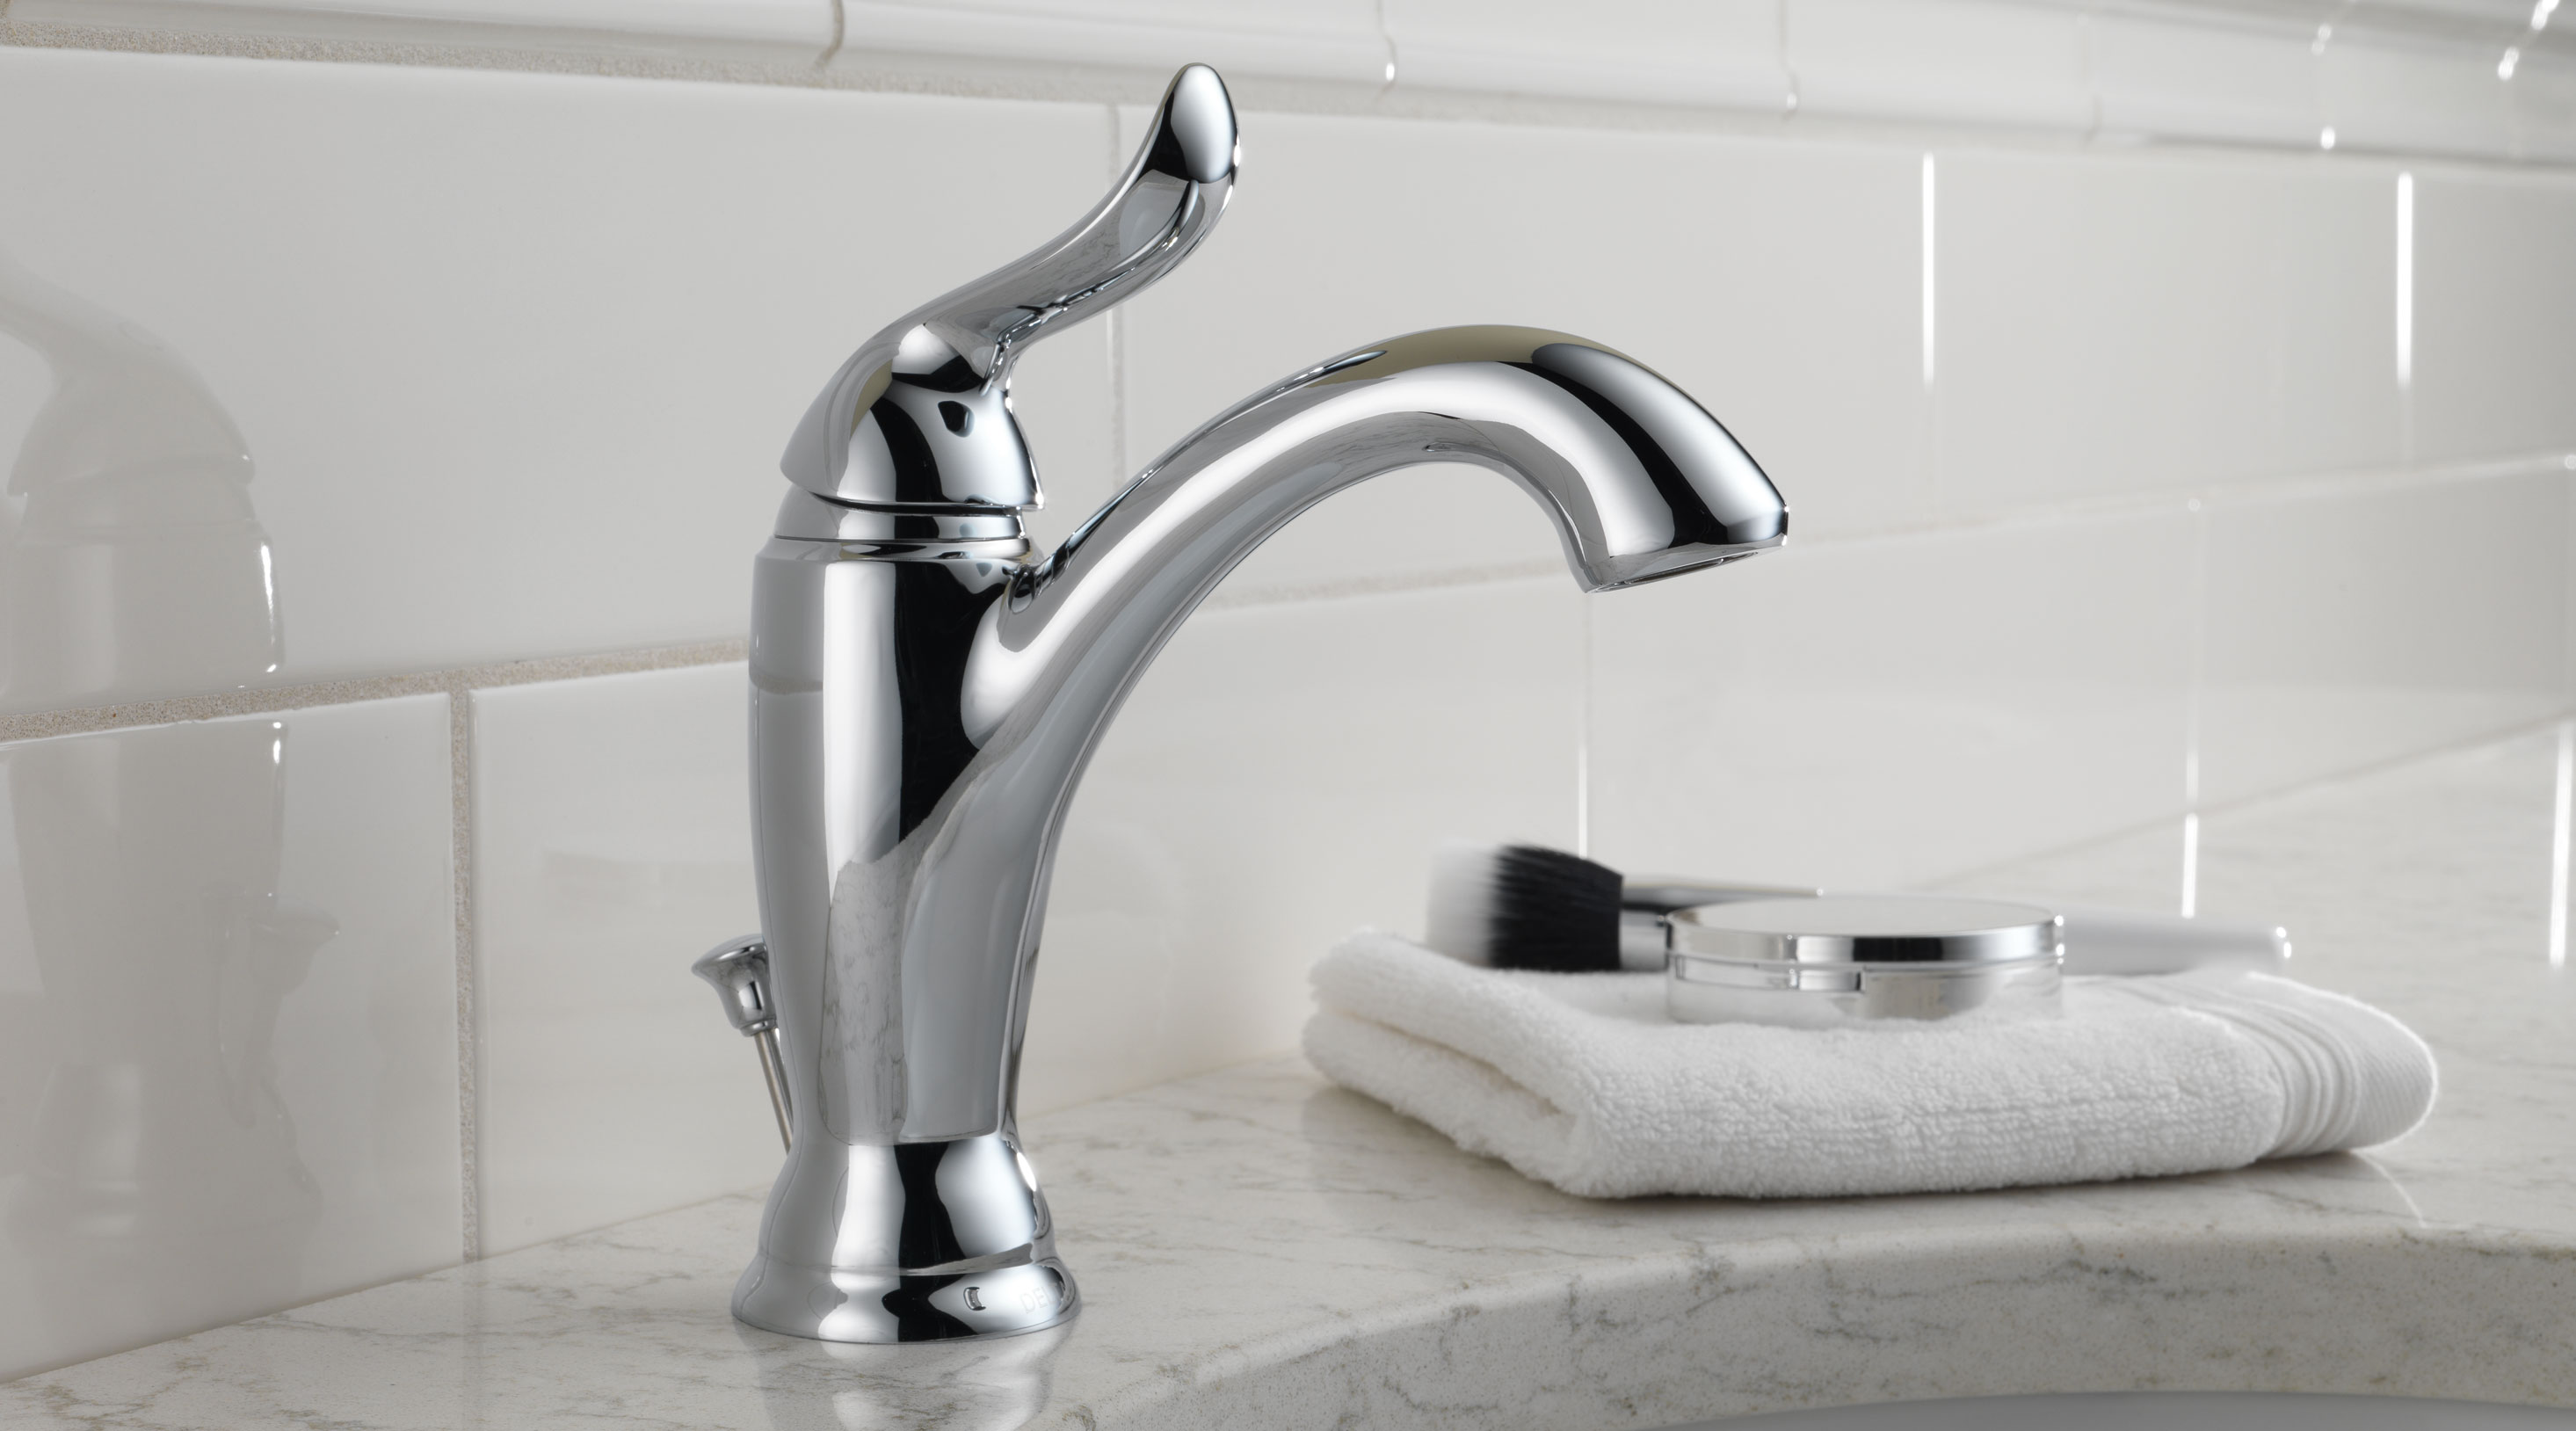 of faucet solutions bathroom best remarkable kohler or faucets kitchen for brands parts tremendous